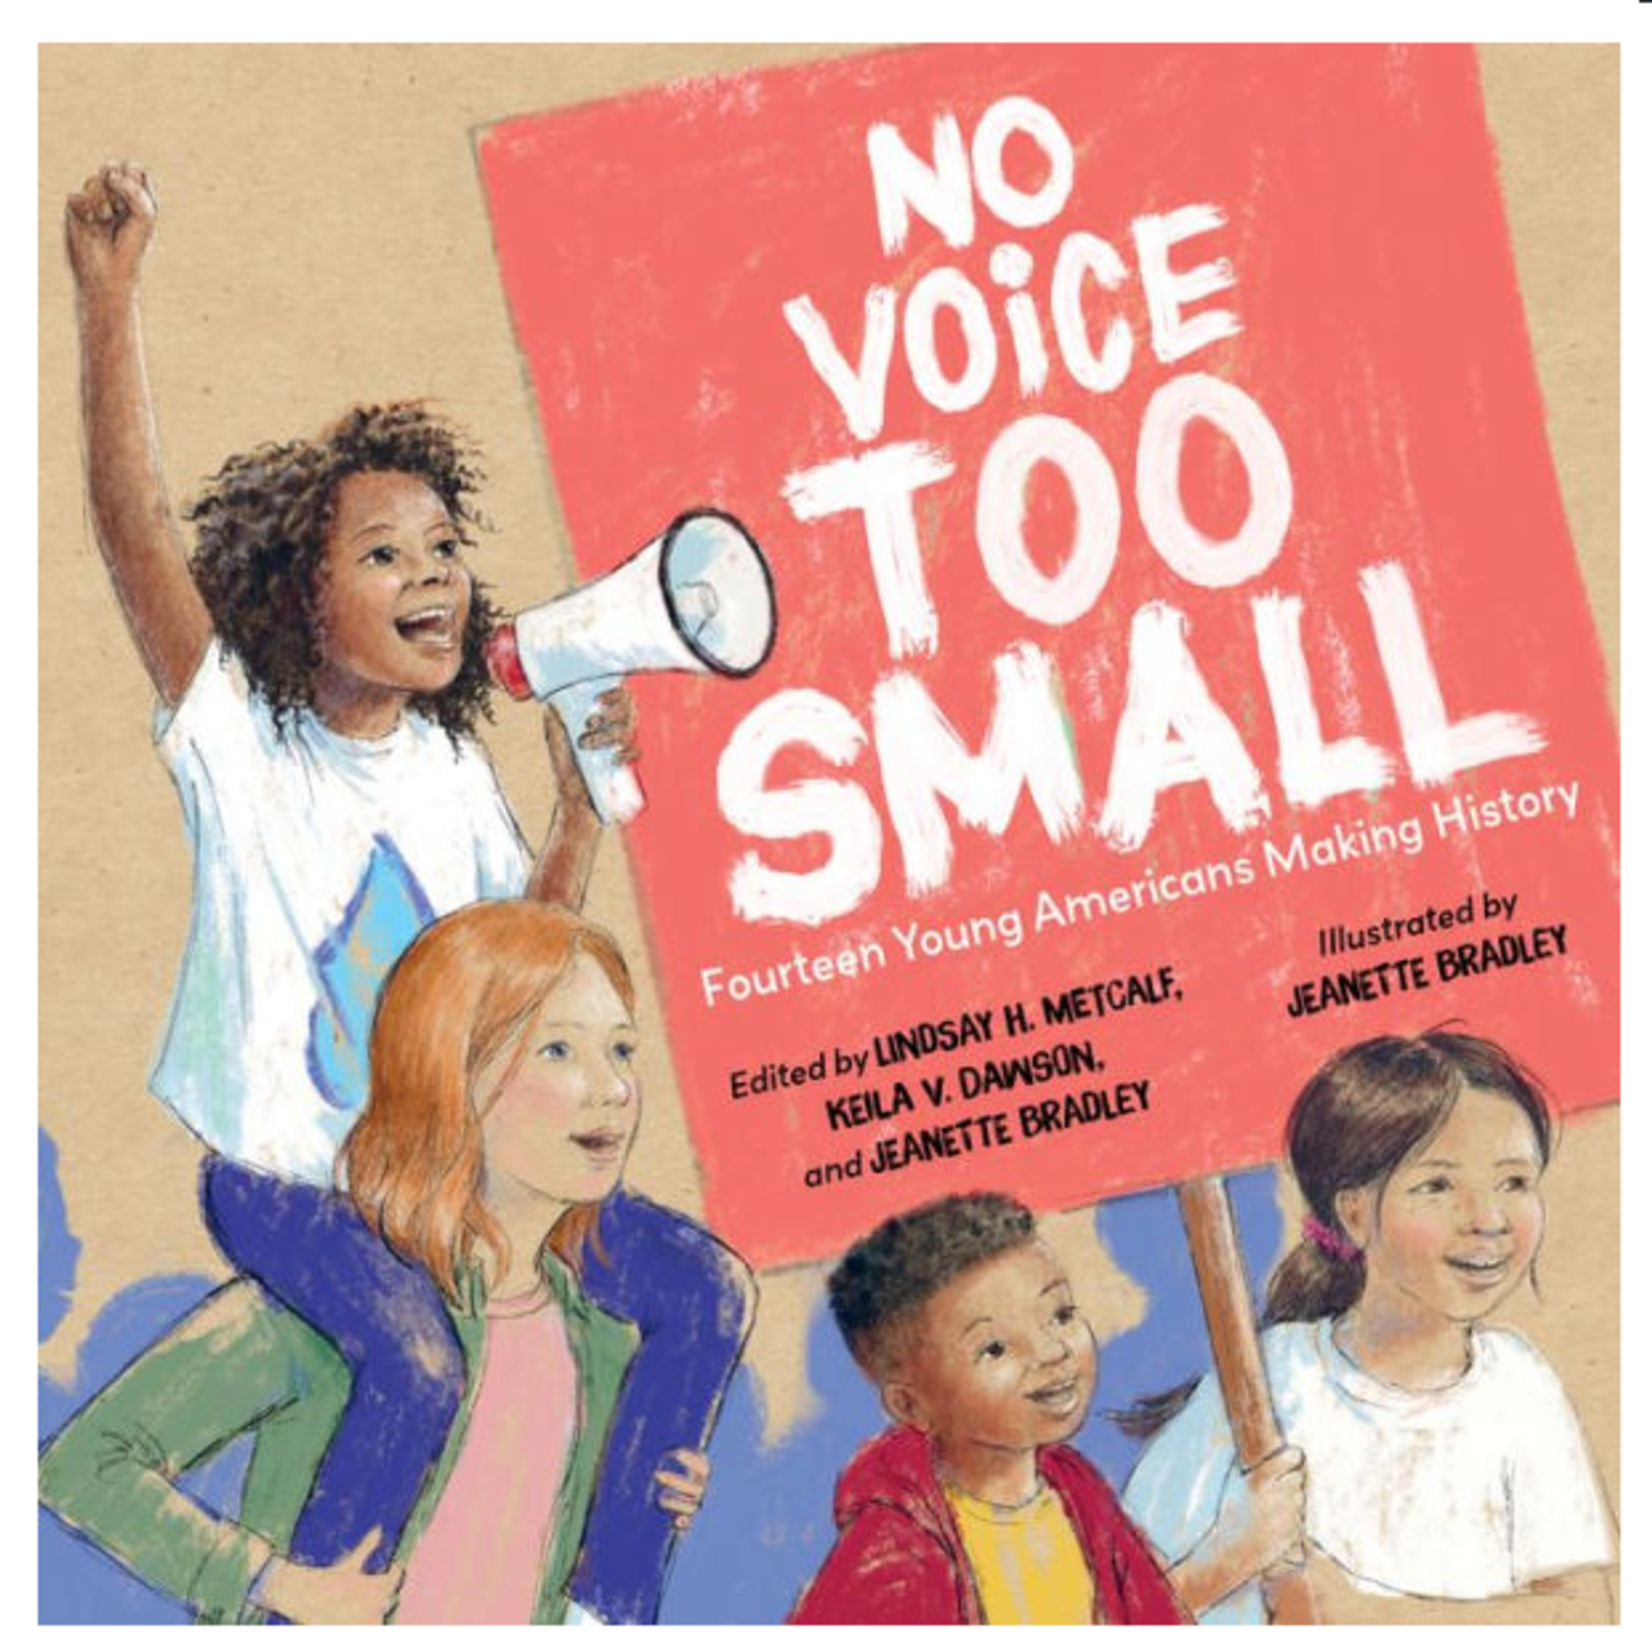 No Voice Too Small - 14 Young Americans Making History